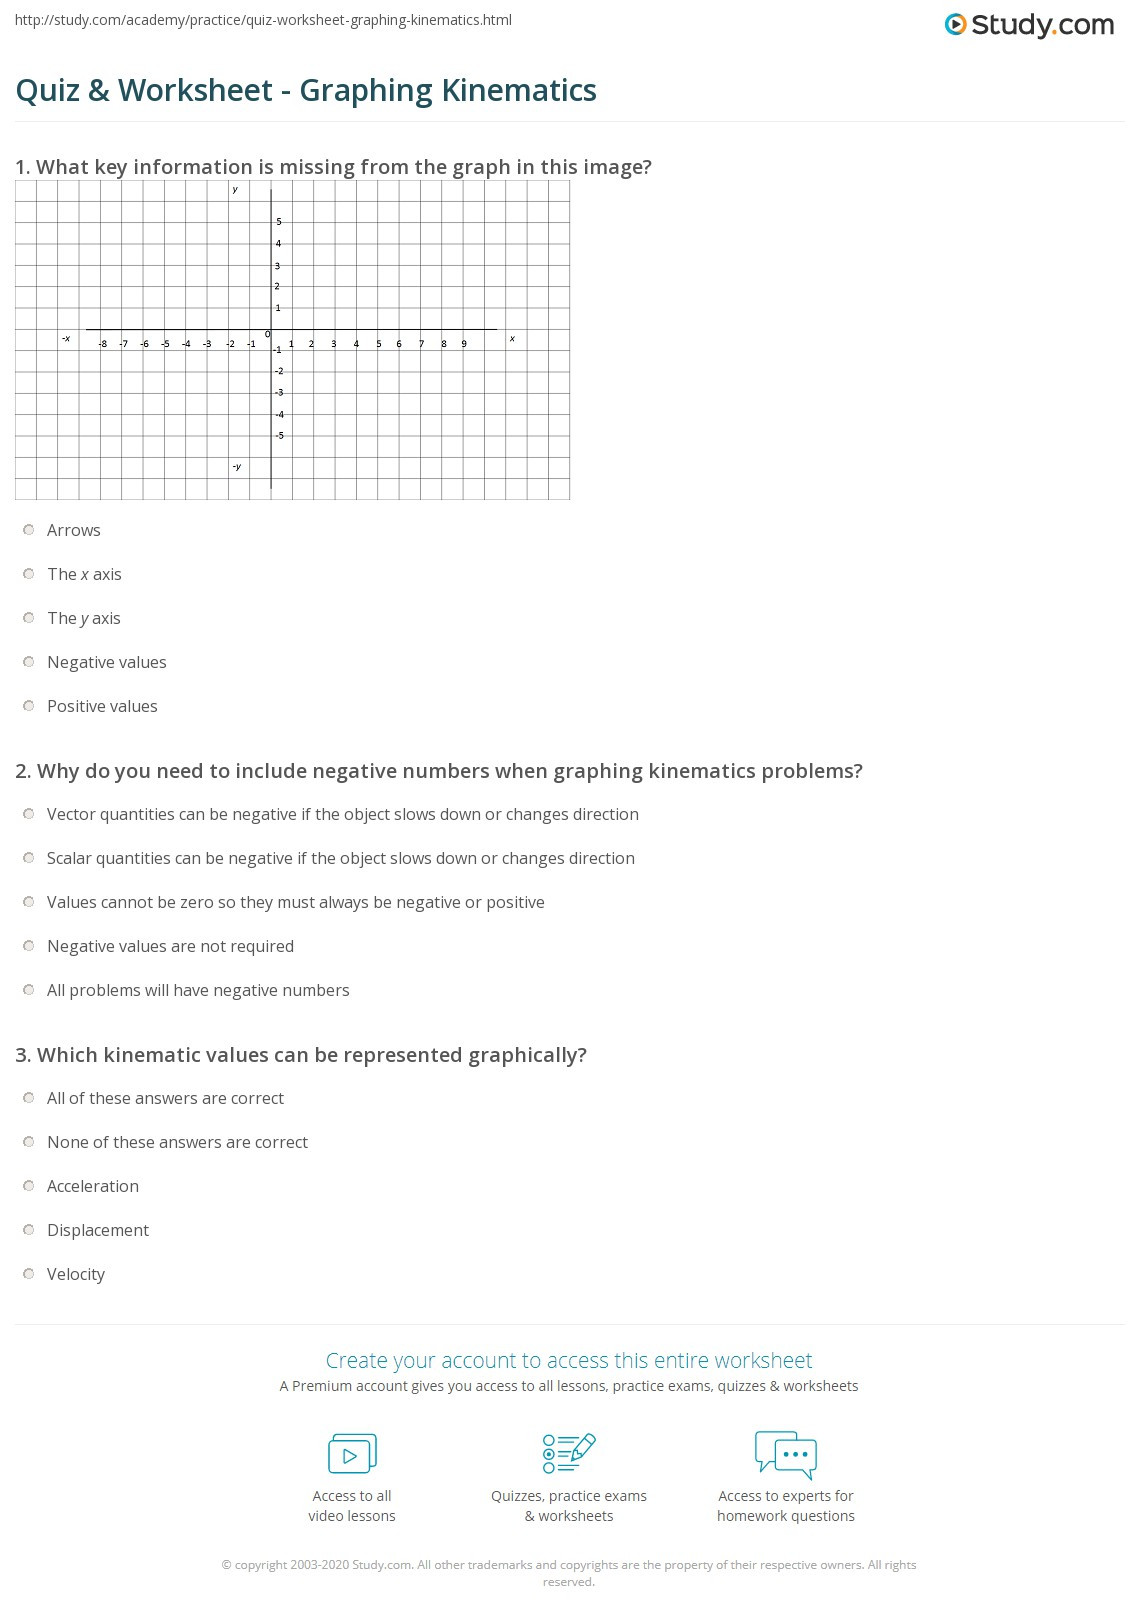 Kinematics Worksheet with Answers Quiz & Worksheet Graphing Kinematics